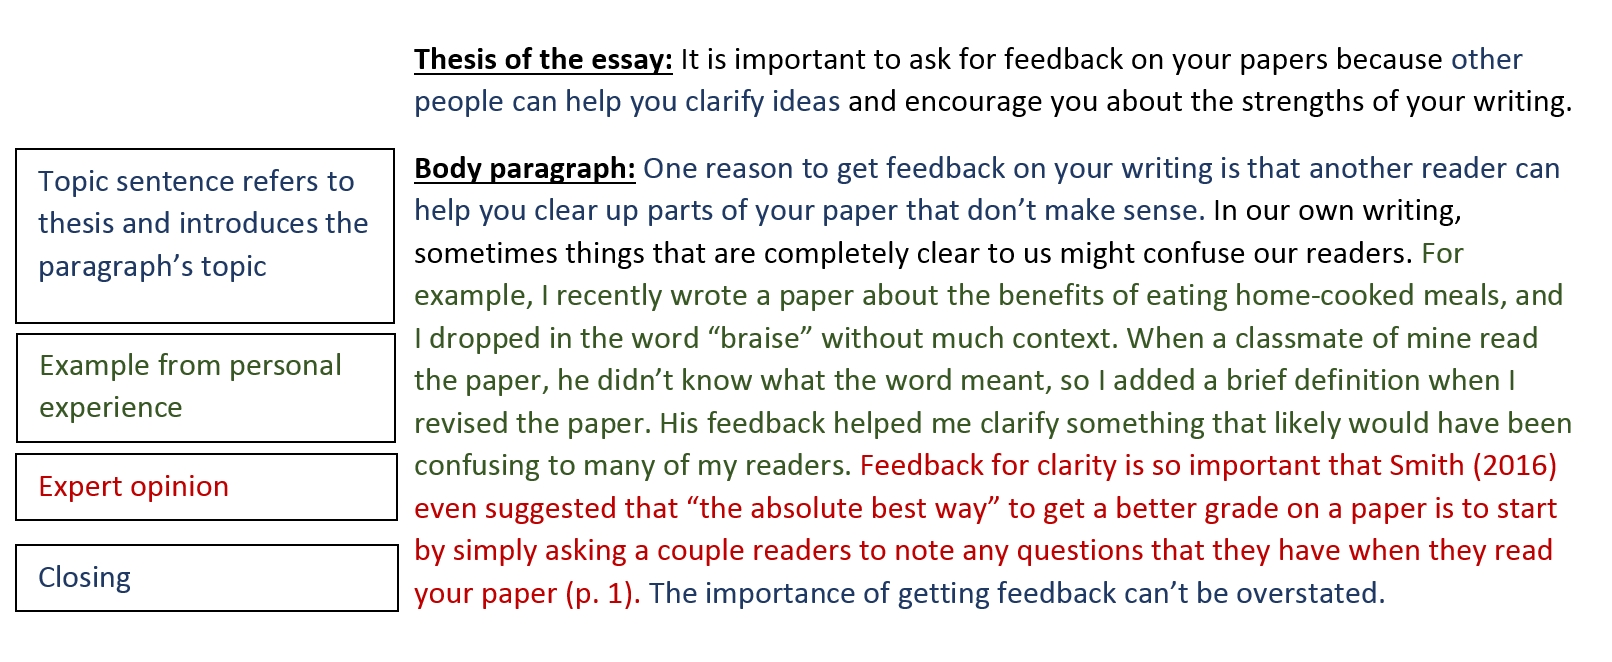 007 Example Of An Introduction Paragraph For Research Paper Body Paragraphs Writing Your Guides At Eastern With Regard Frightening A In Pdf Full